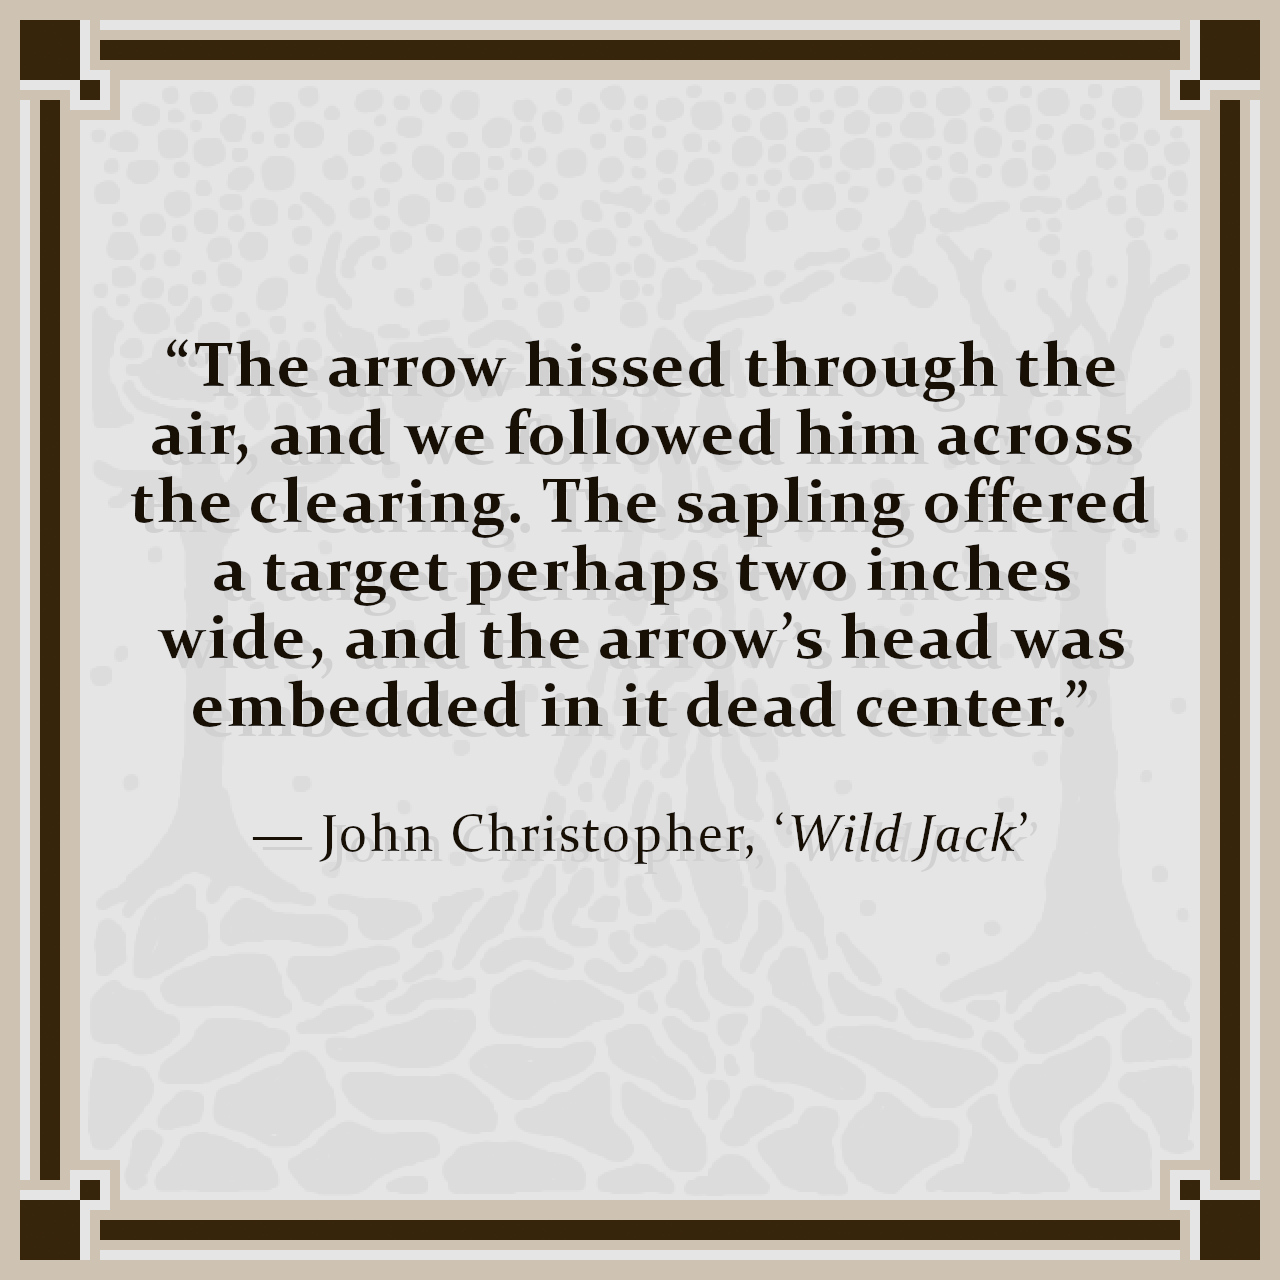 """""""The arrow hissed through the air, and we followed him across the clearing. The sapling offered a target perhaps two inches wide, and the arrow's head was embedded in it dead center."""" — John Christopher, 'Wild Jack'"""